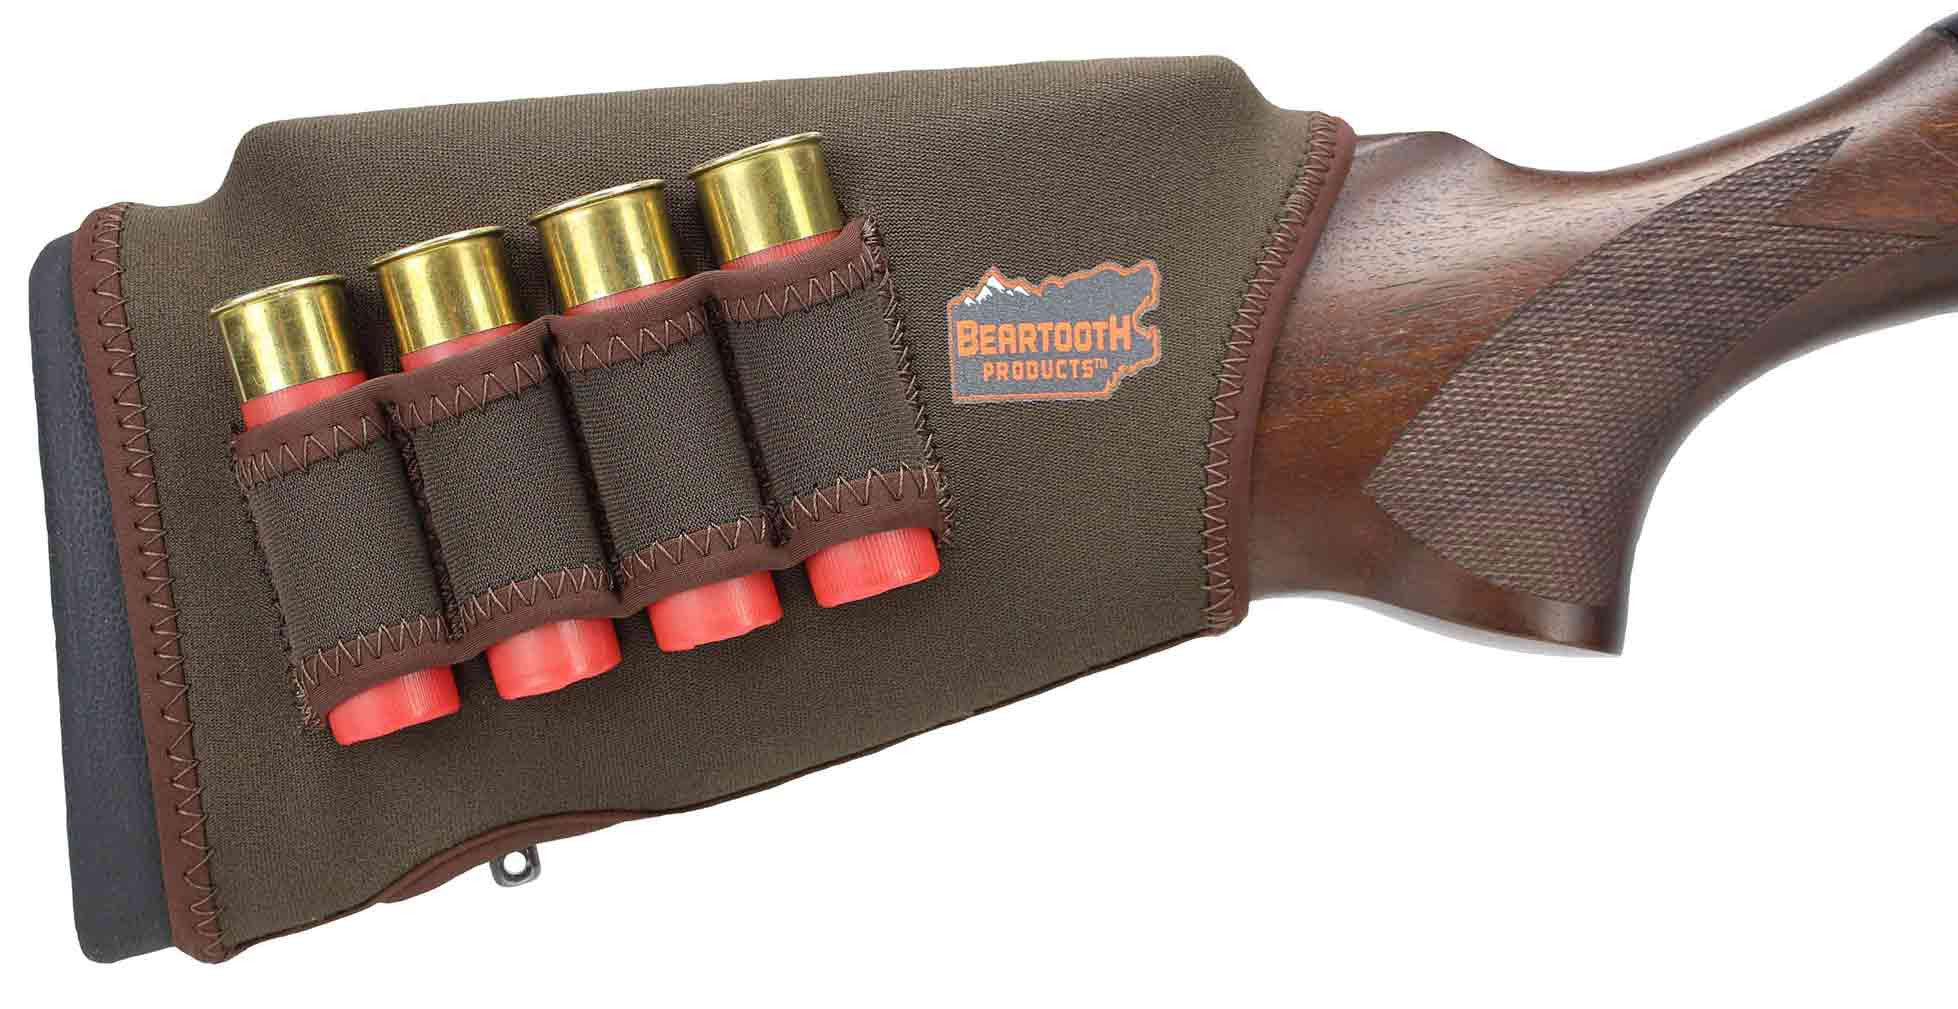 **NEW** COMB RAISING KIT 2.0 - Shotgun Model in Brown